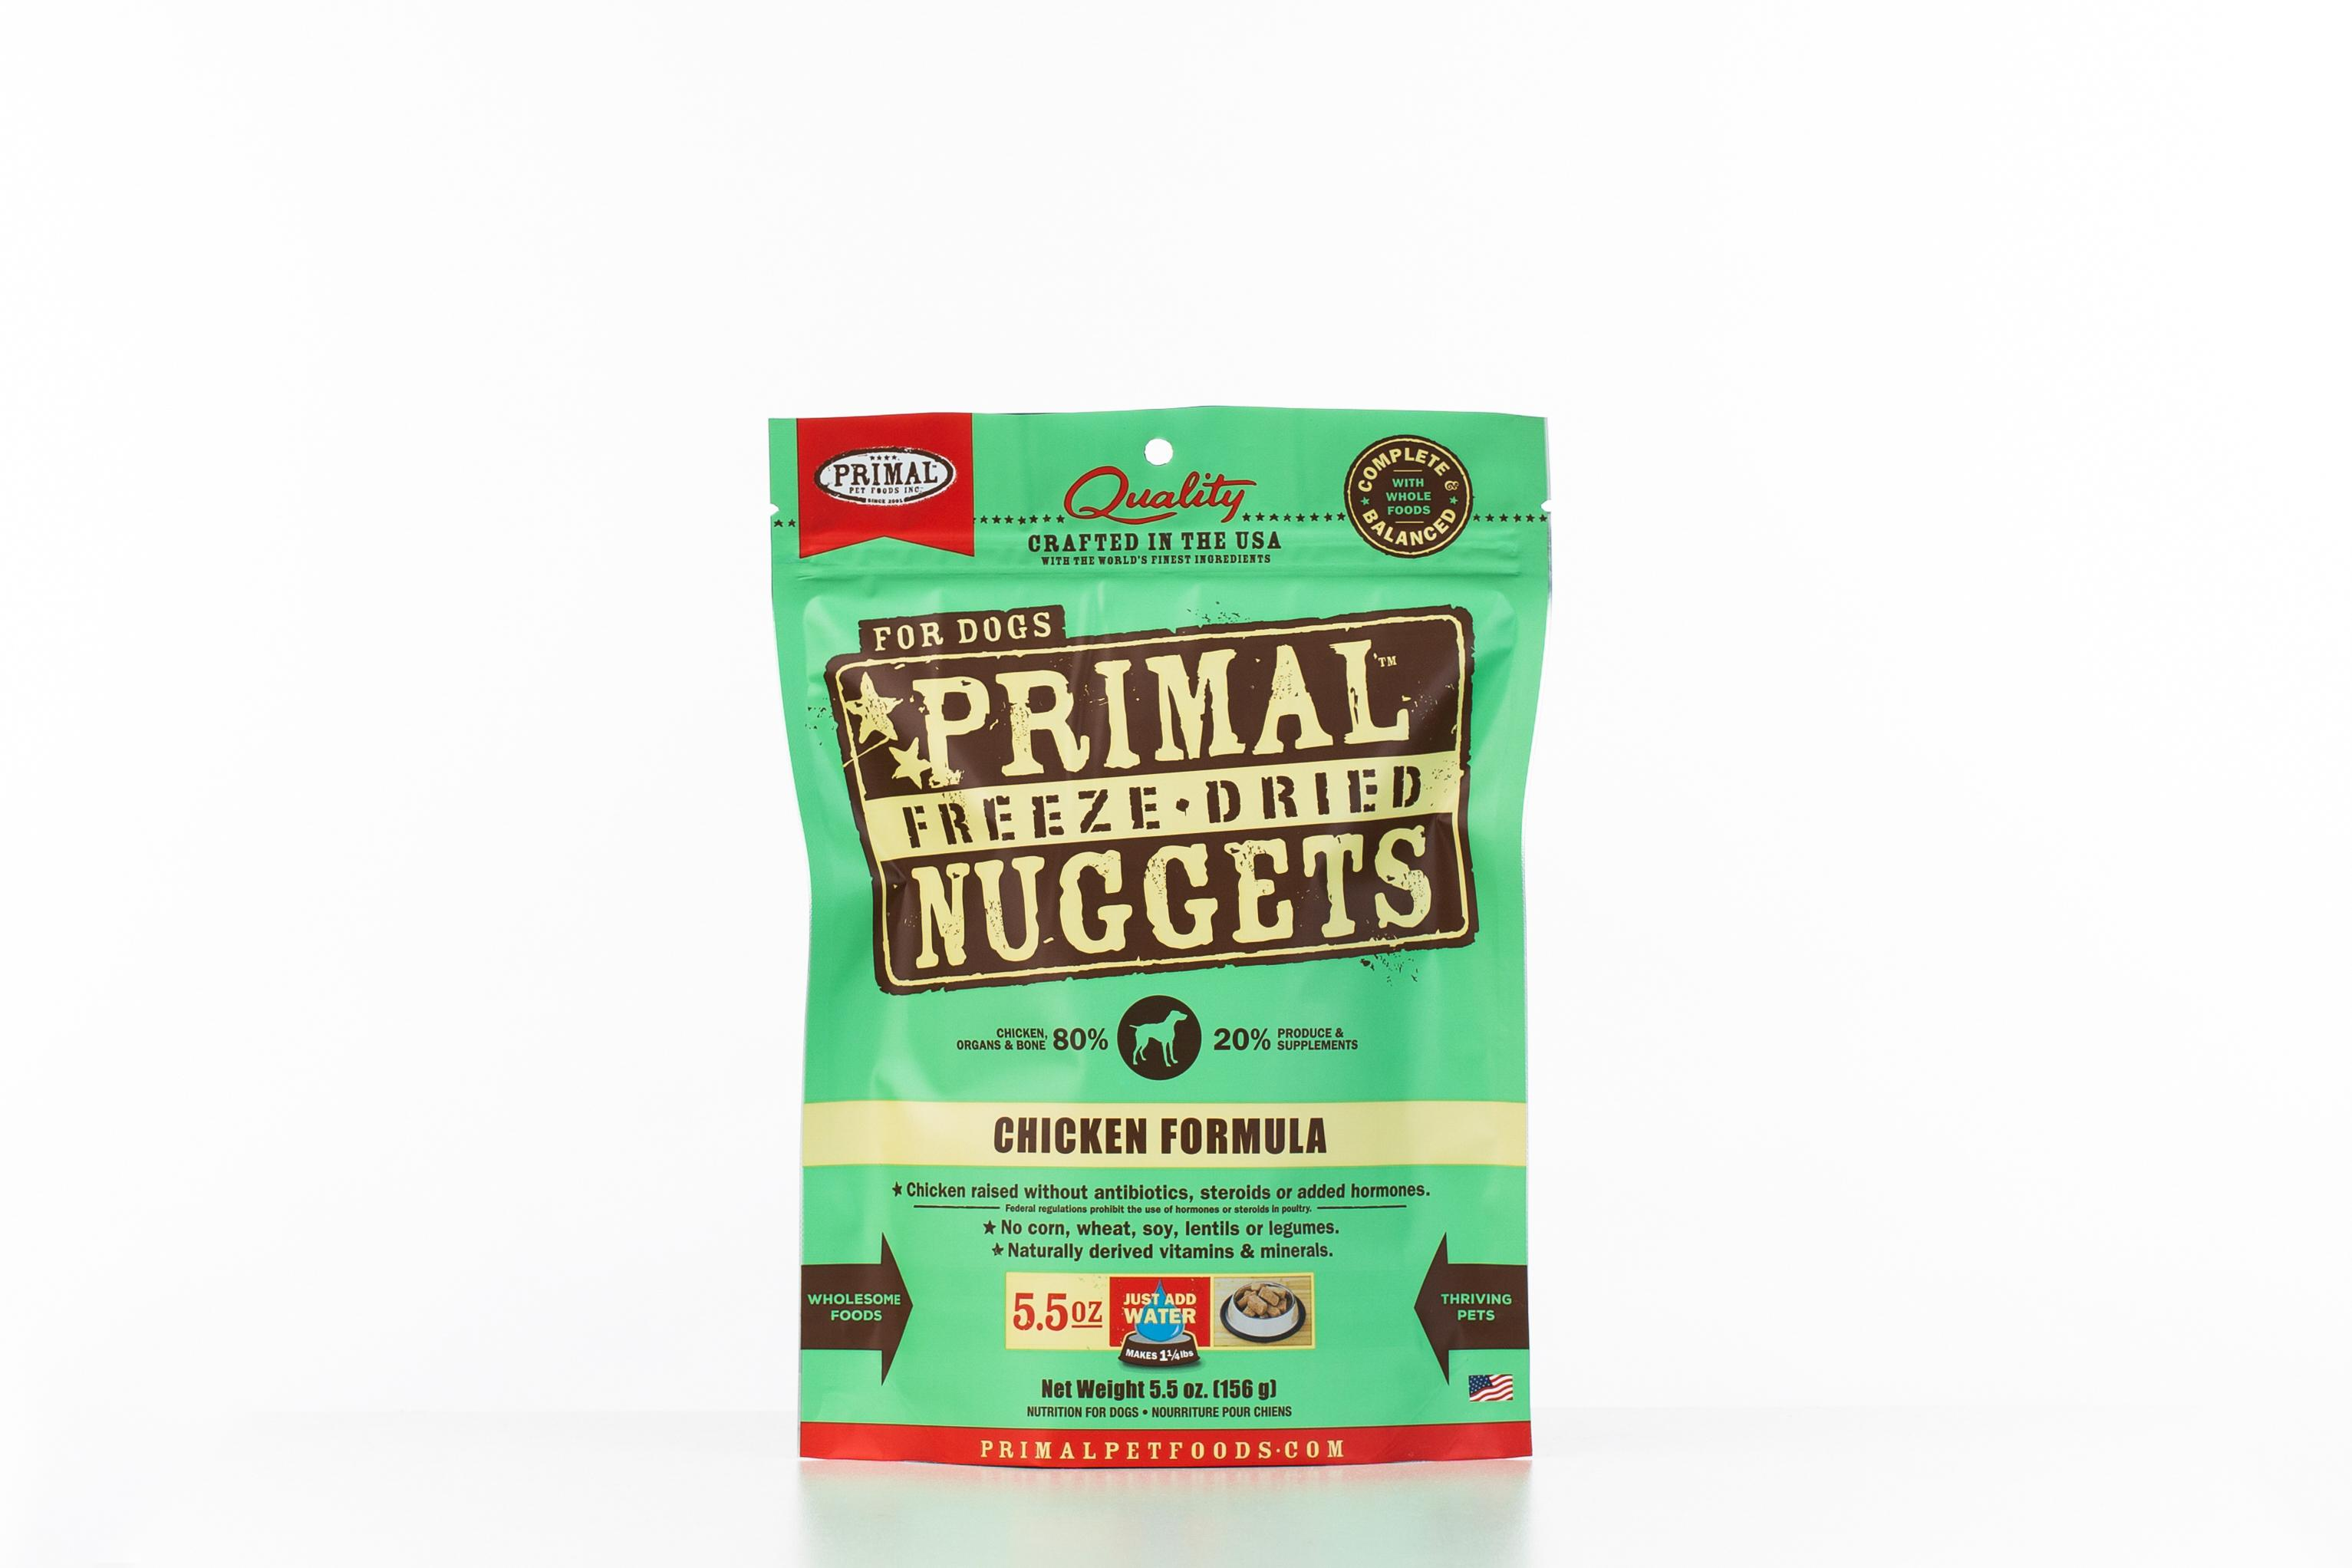 Primal Raw Freeze-Dried Nuggets Chicken Formula Dog Food Image